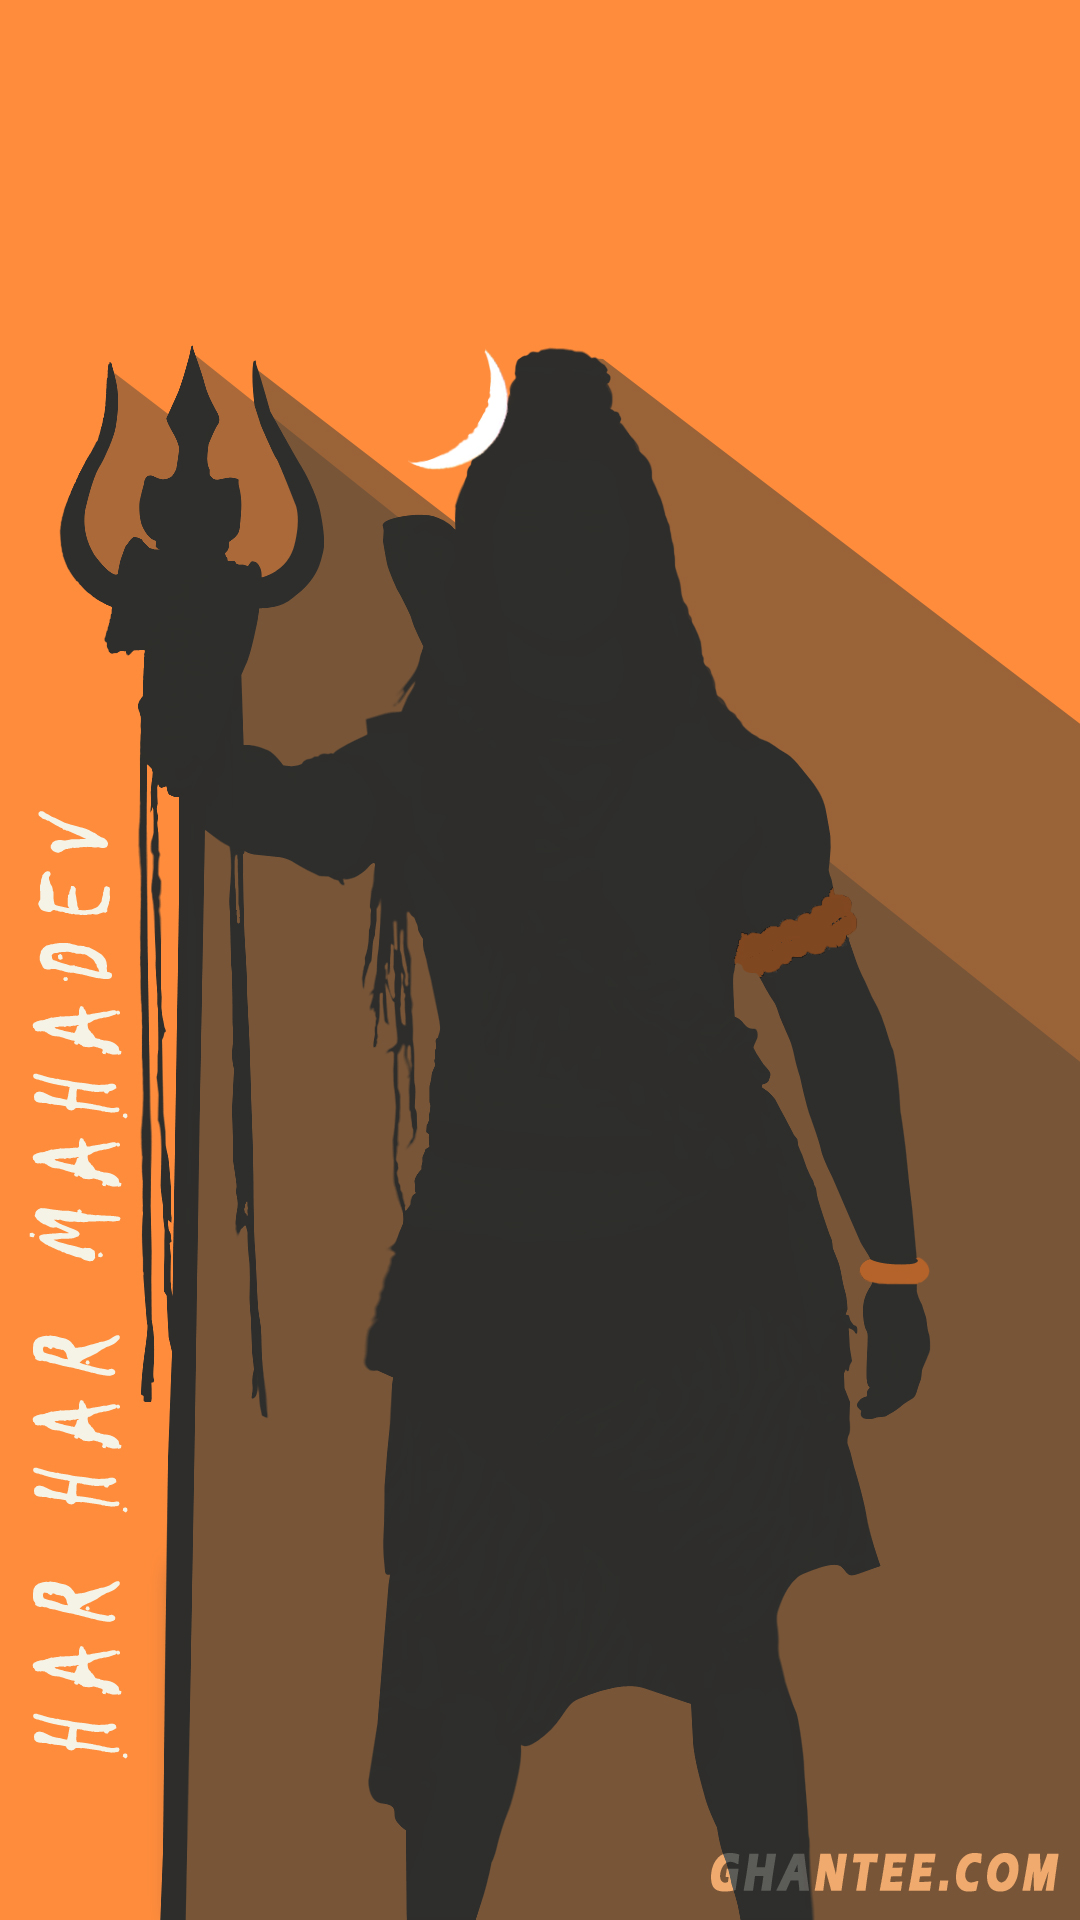 shiv wallpaper free download – standing pose minimalist orange